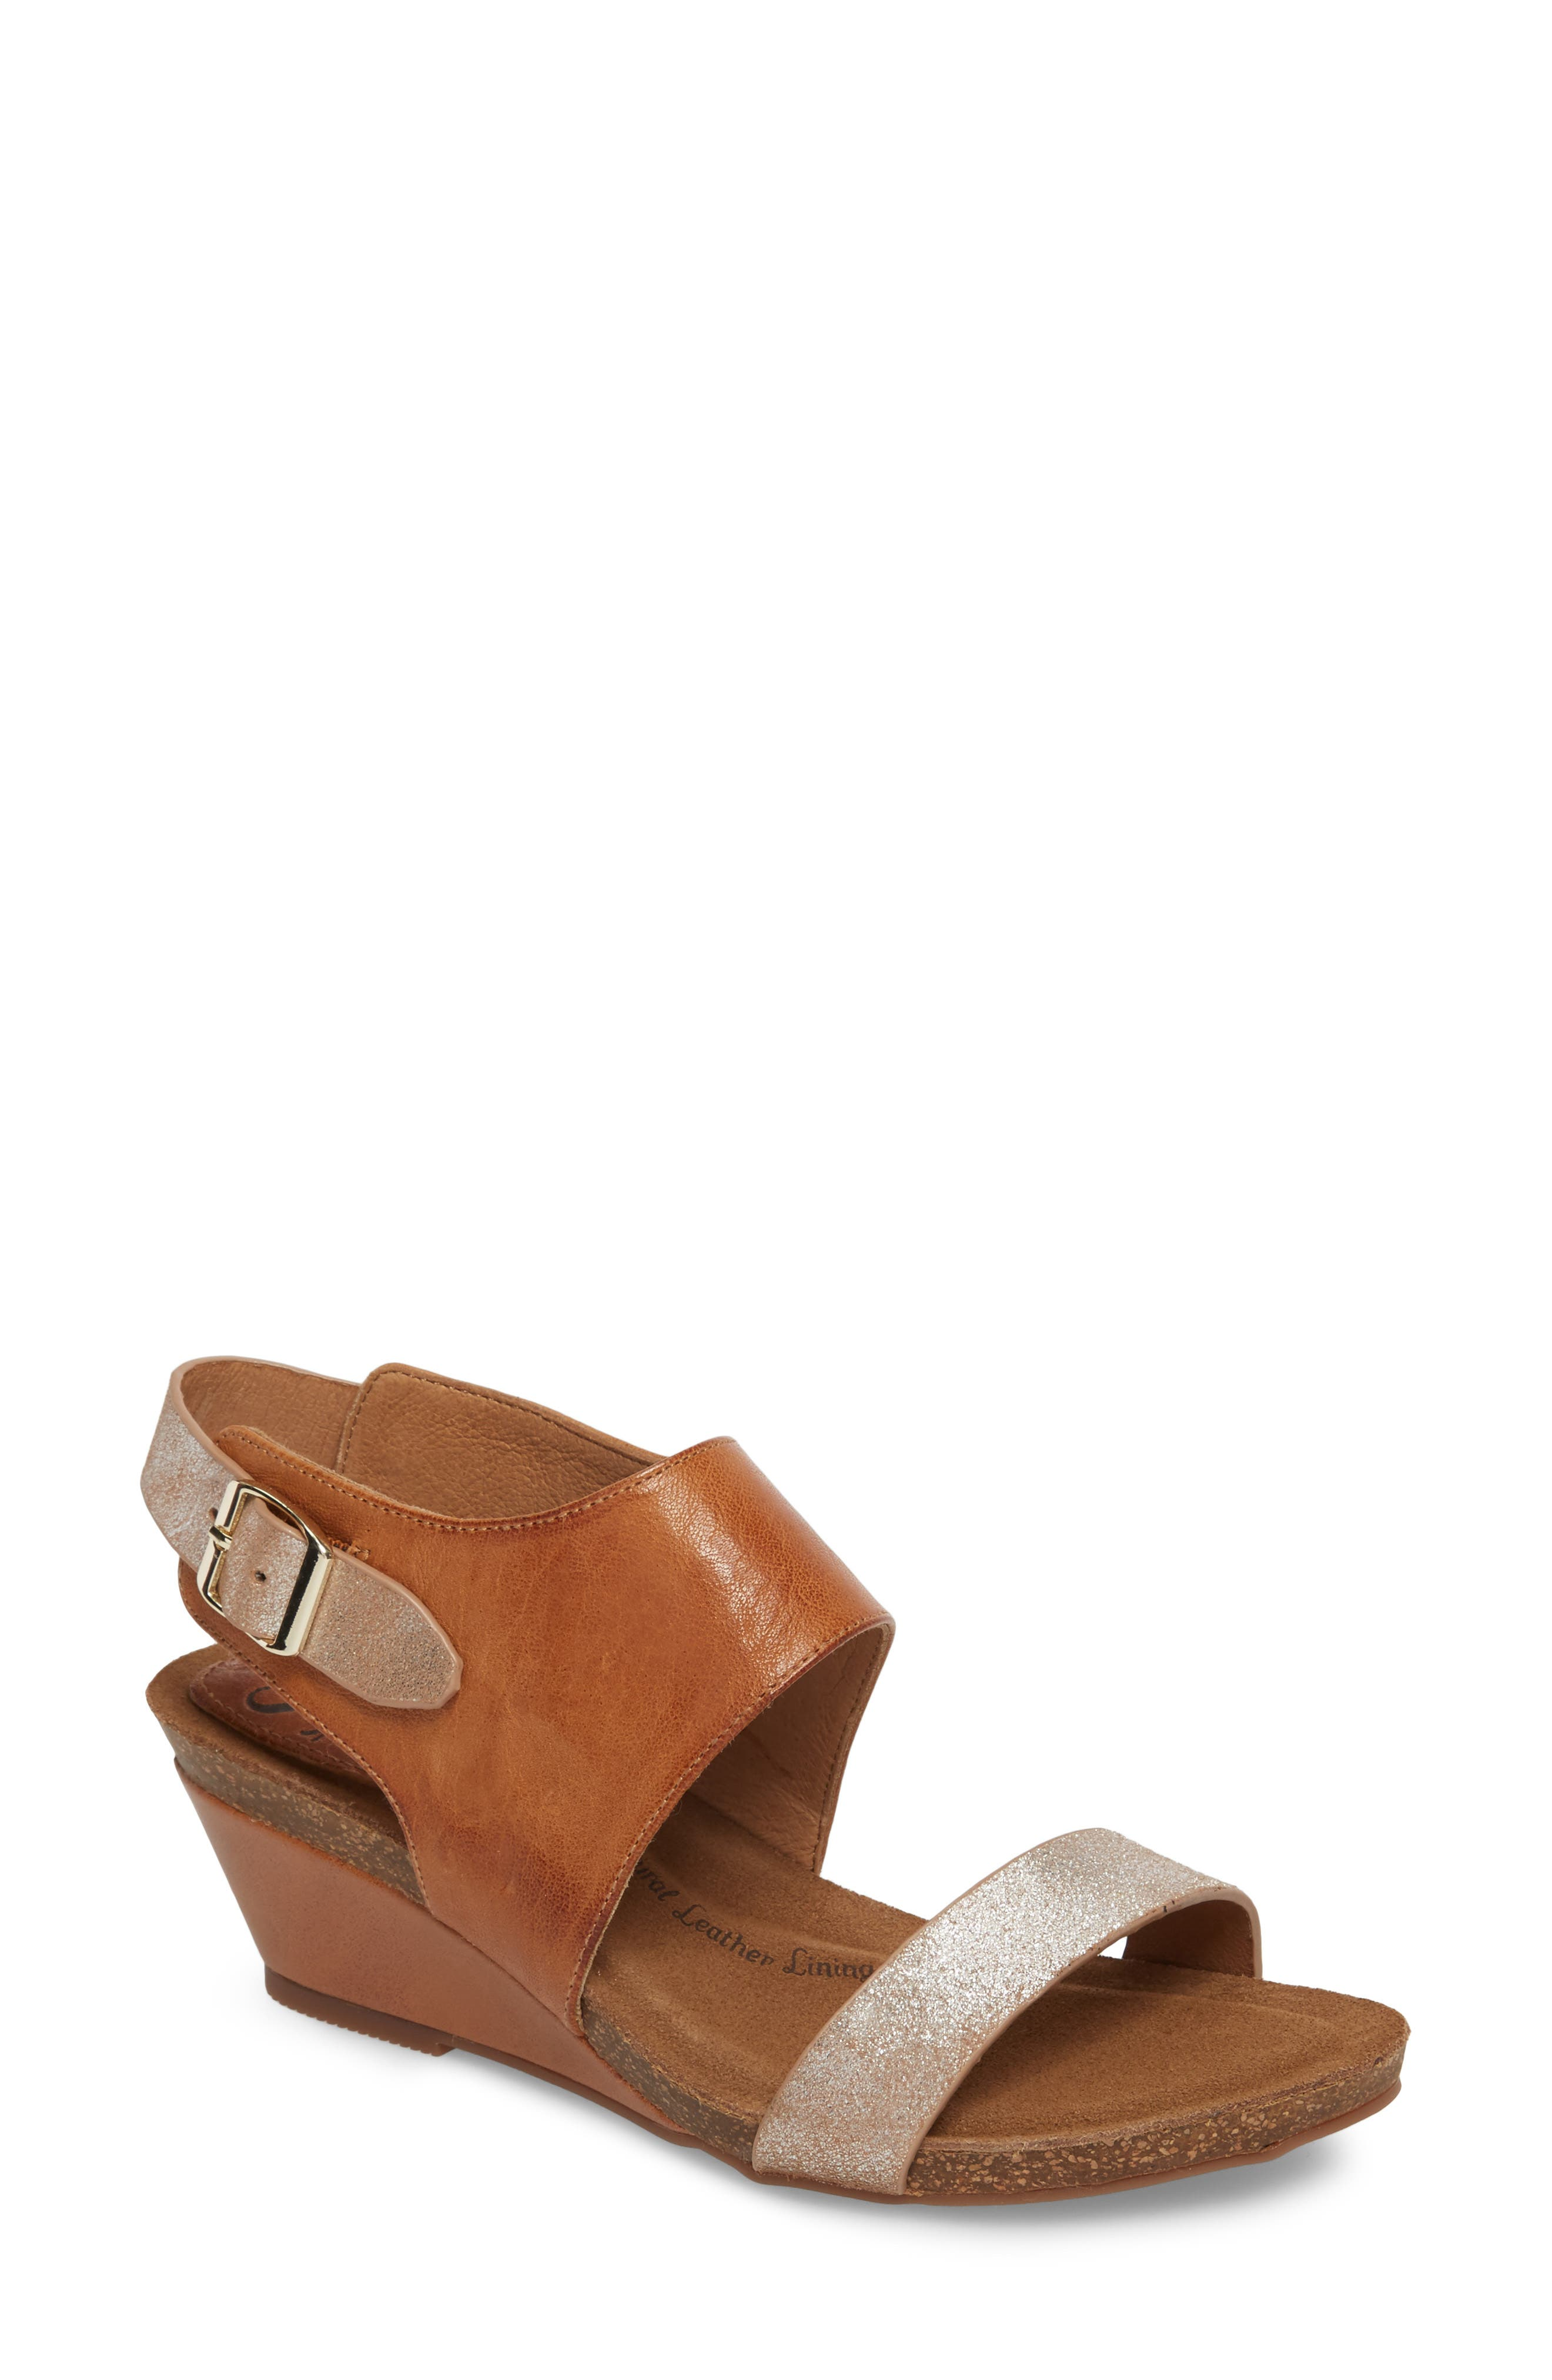 'Vanita' Leather Sandal,                             Main thumbnail 1, color,                             LUGGAGE/ SILVER LEATHER